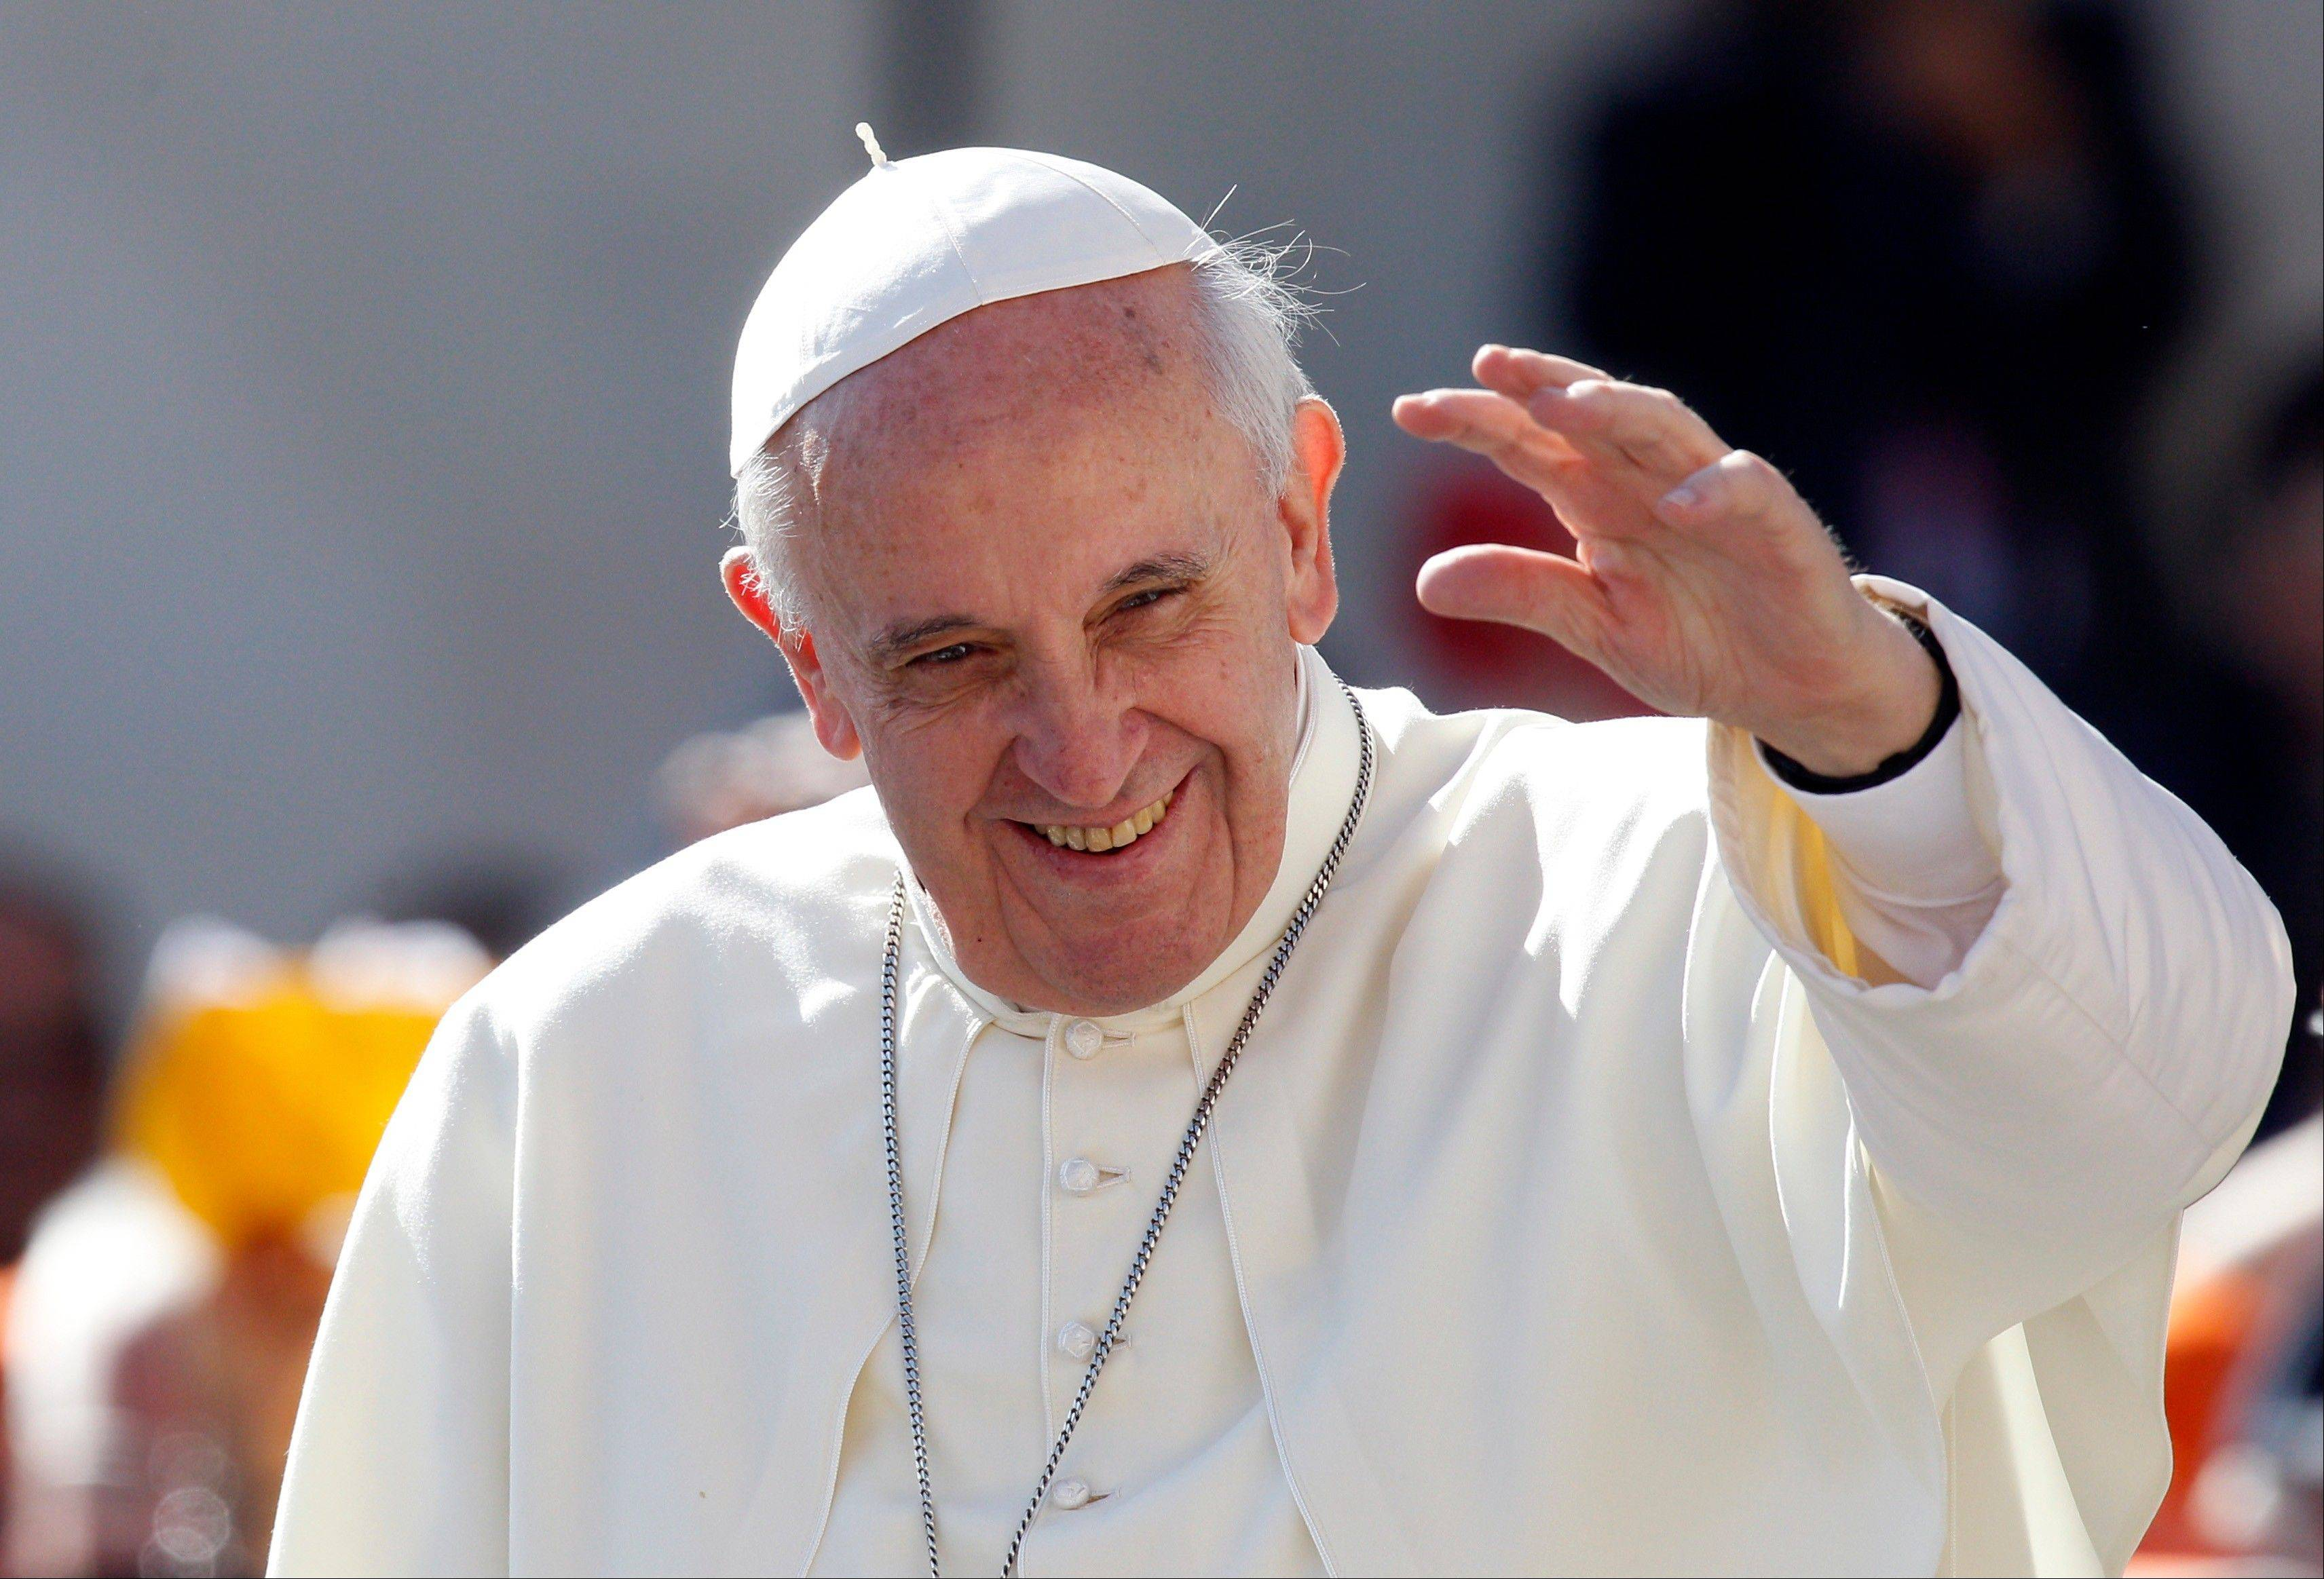 Pope Francis convenes his parallel cabinet Tuesday for a first round of talks on reforming the Catholic Church, bringing eight cardinals from around the globe together in a novel initiative to get local church leaders involved in helping make decisions for the 1.2-billion strong universal Catholic Church.